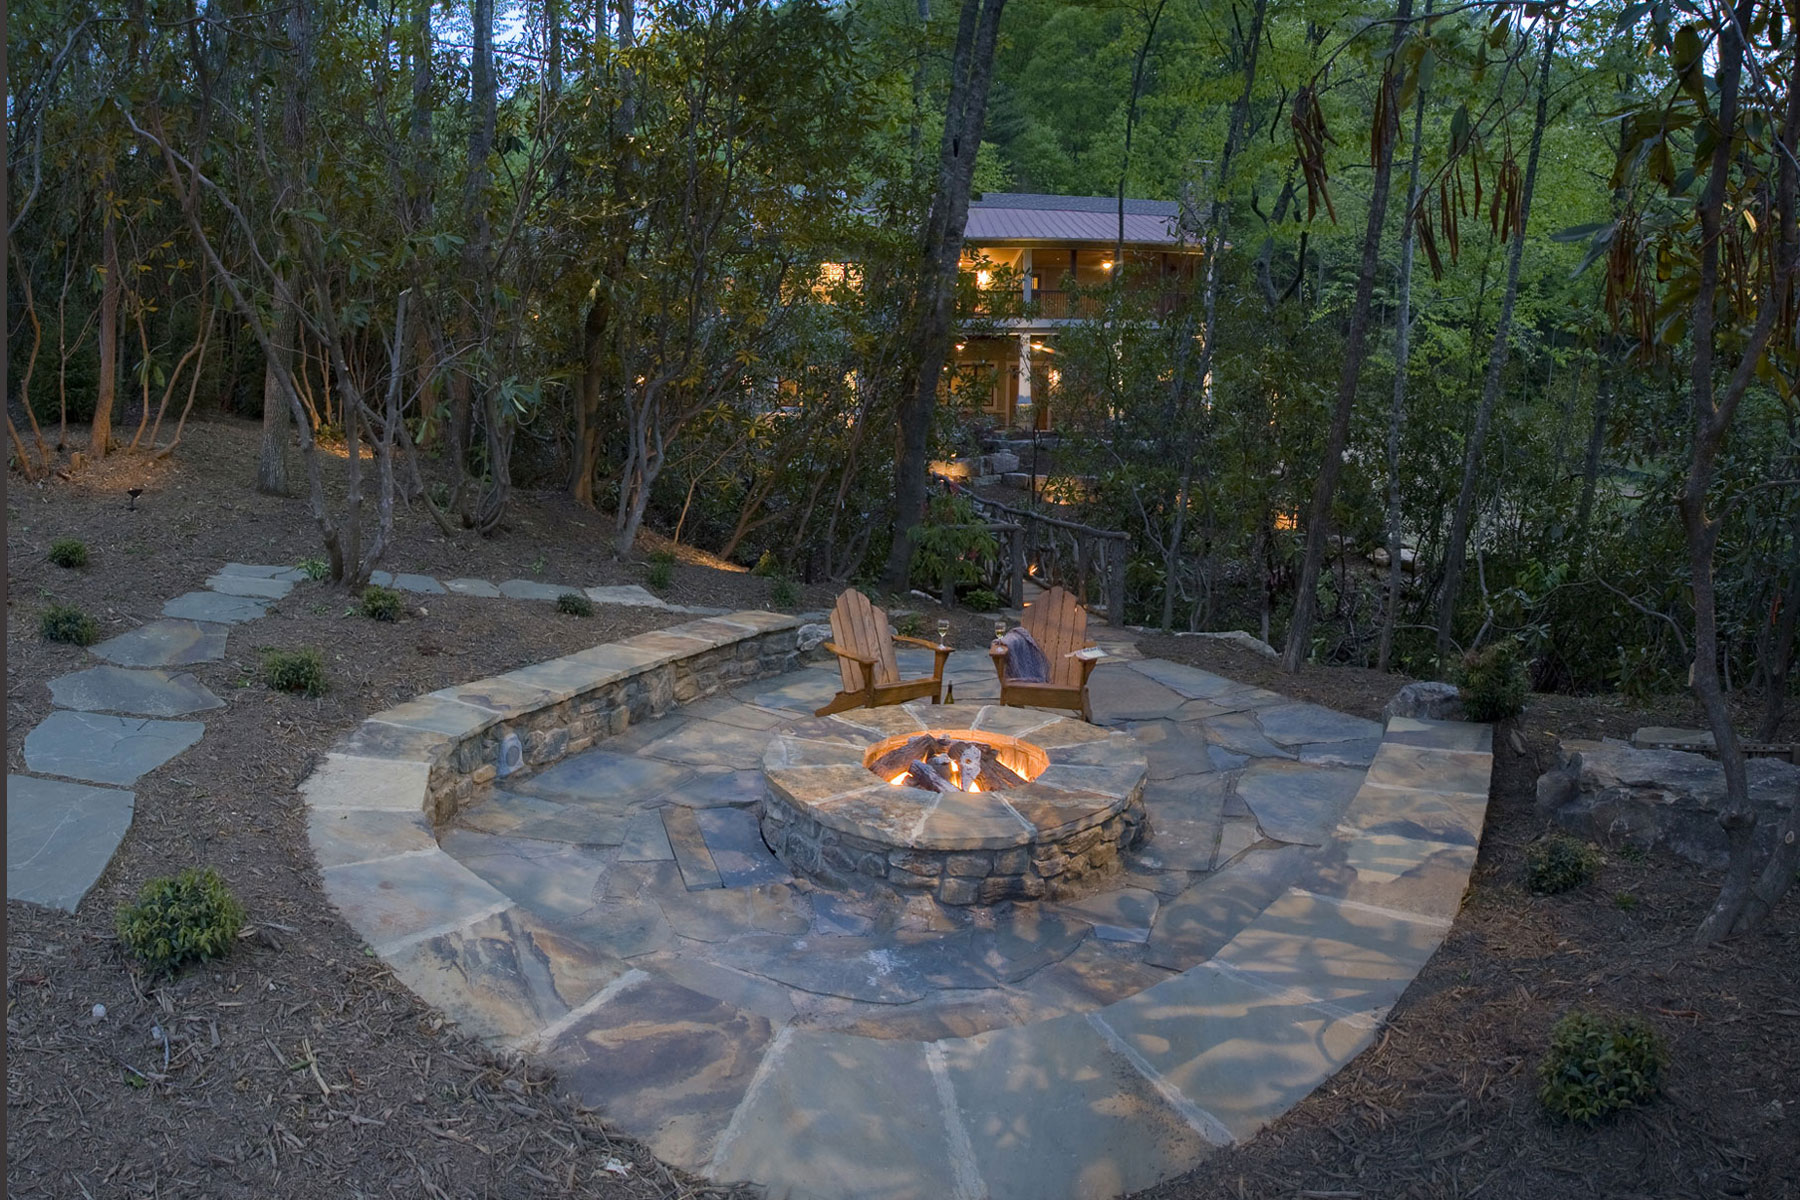 Backyard stone patio with firepit and raised wall for ... on Backyard Patio With Firepit id=68000